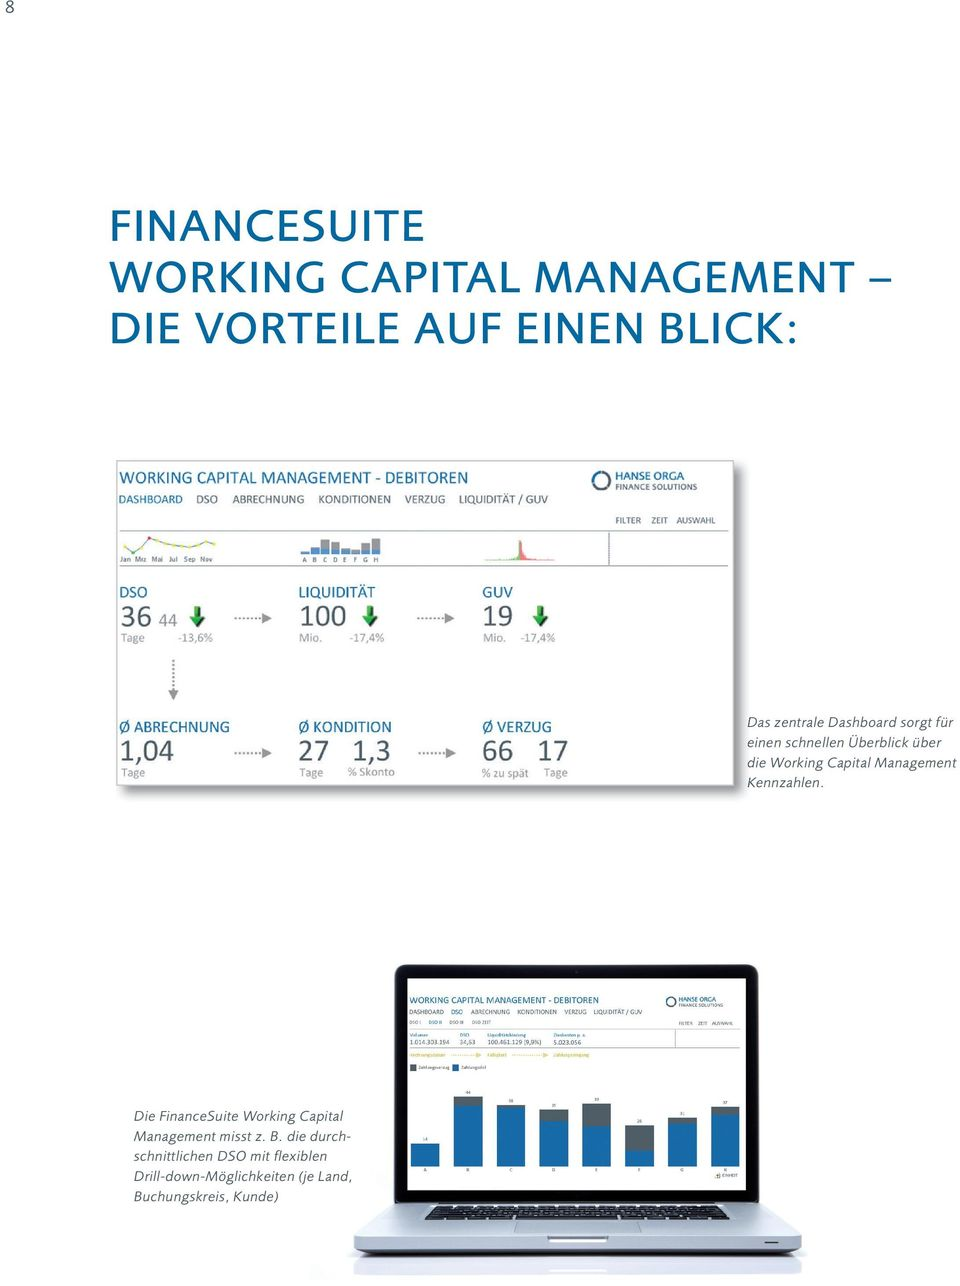 Management Kennzahlen. Die FinanceSuite Working Capital Management misst z. B.